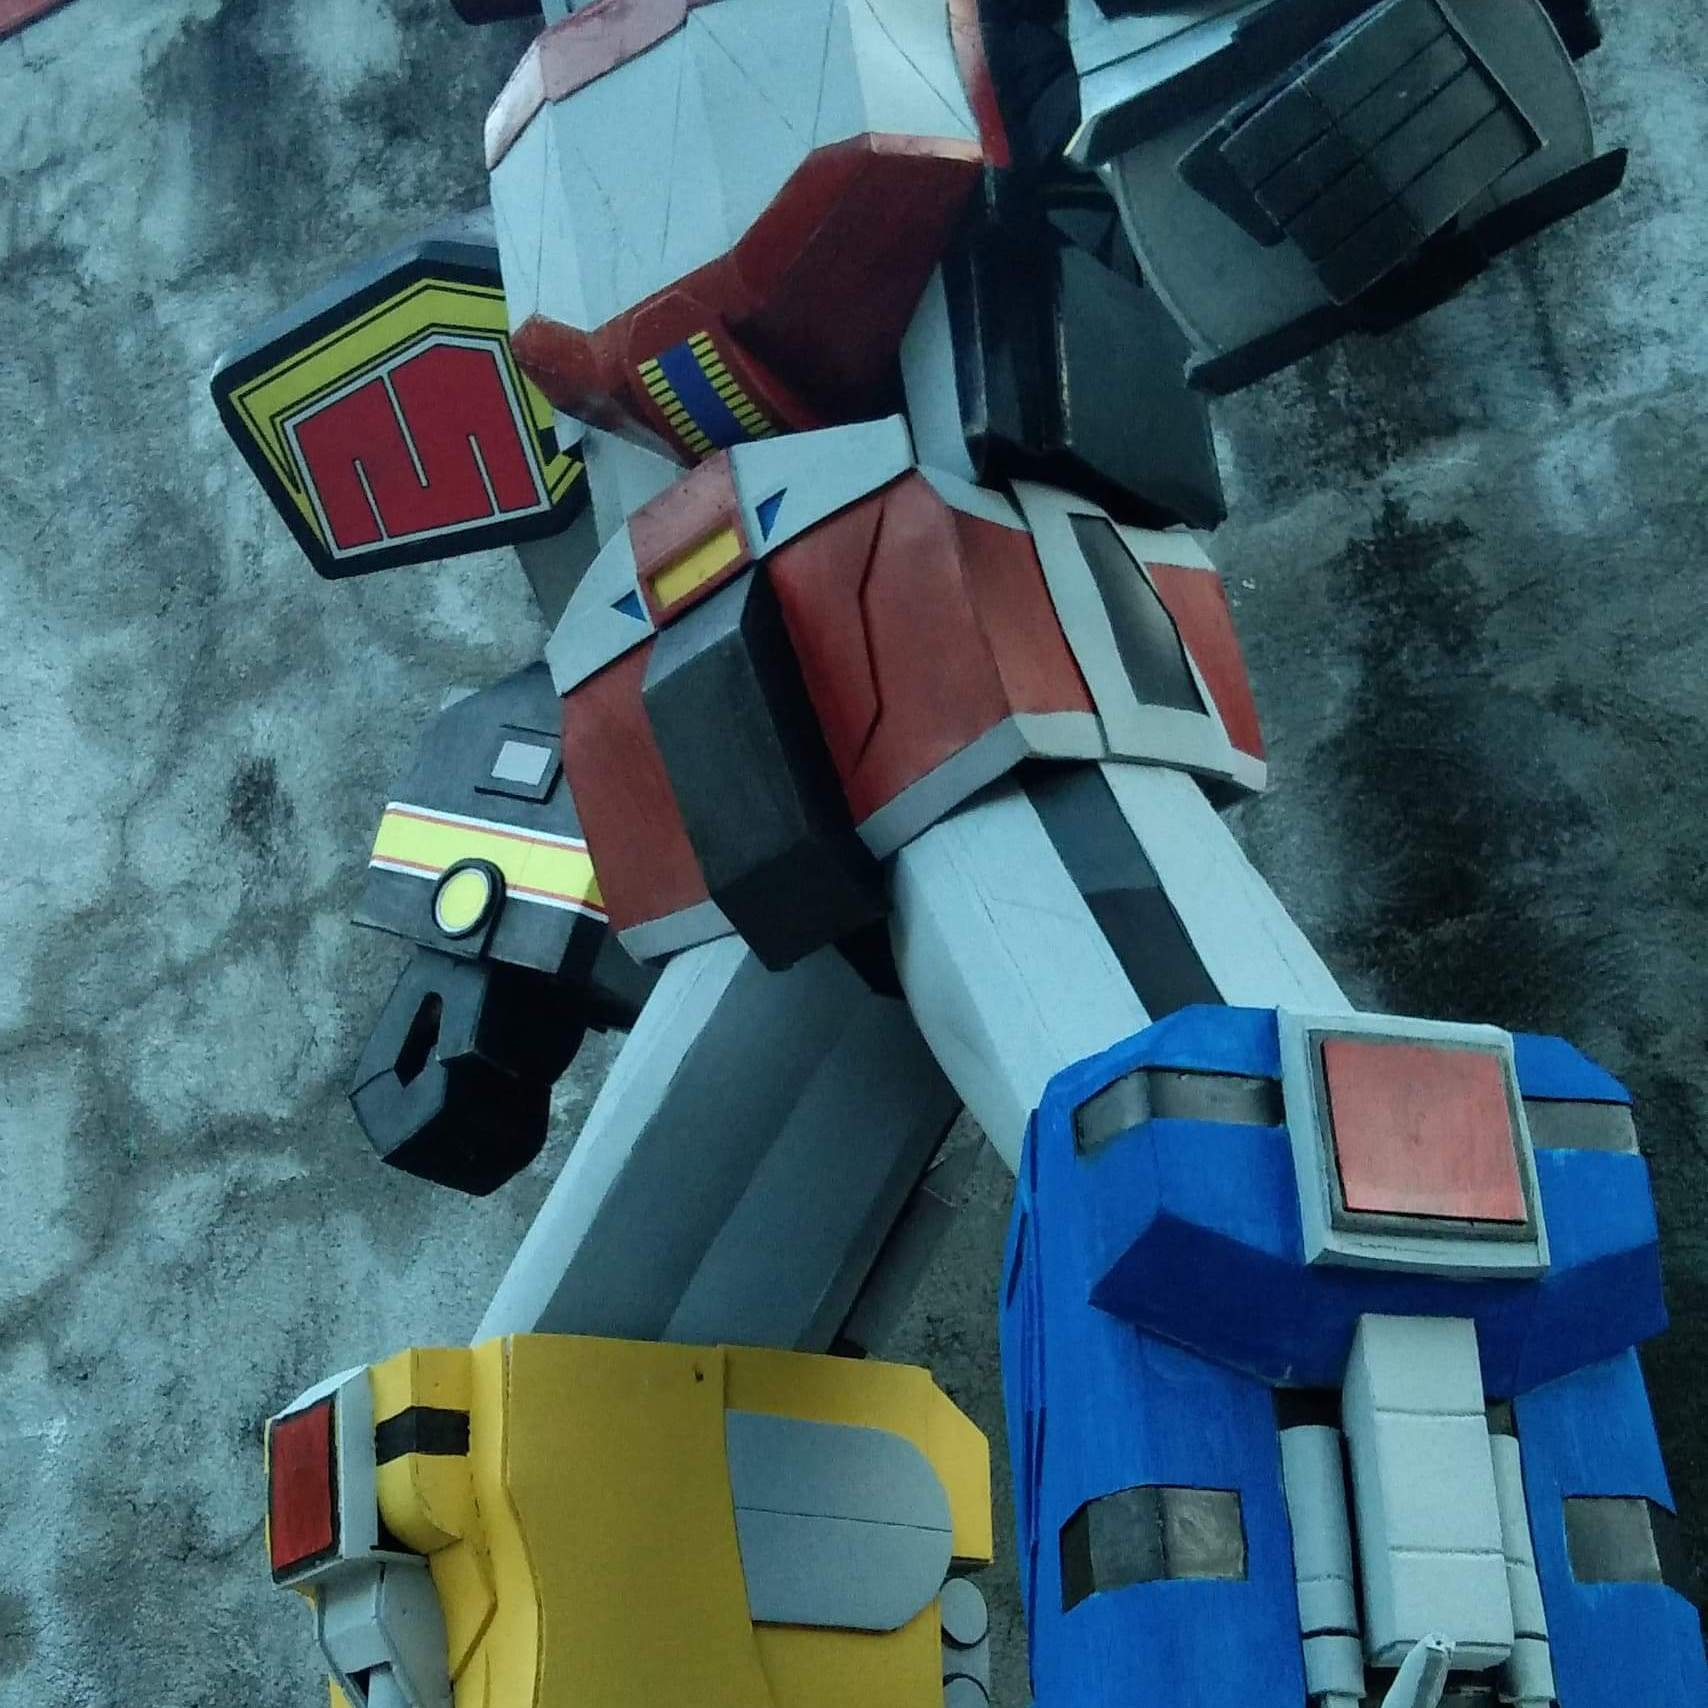 Megazord with brightly colored animal robot parts